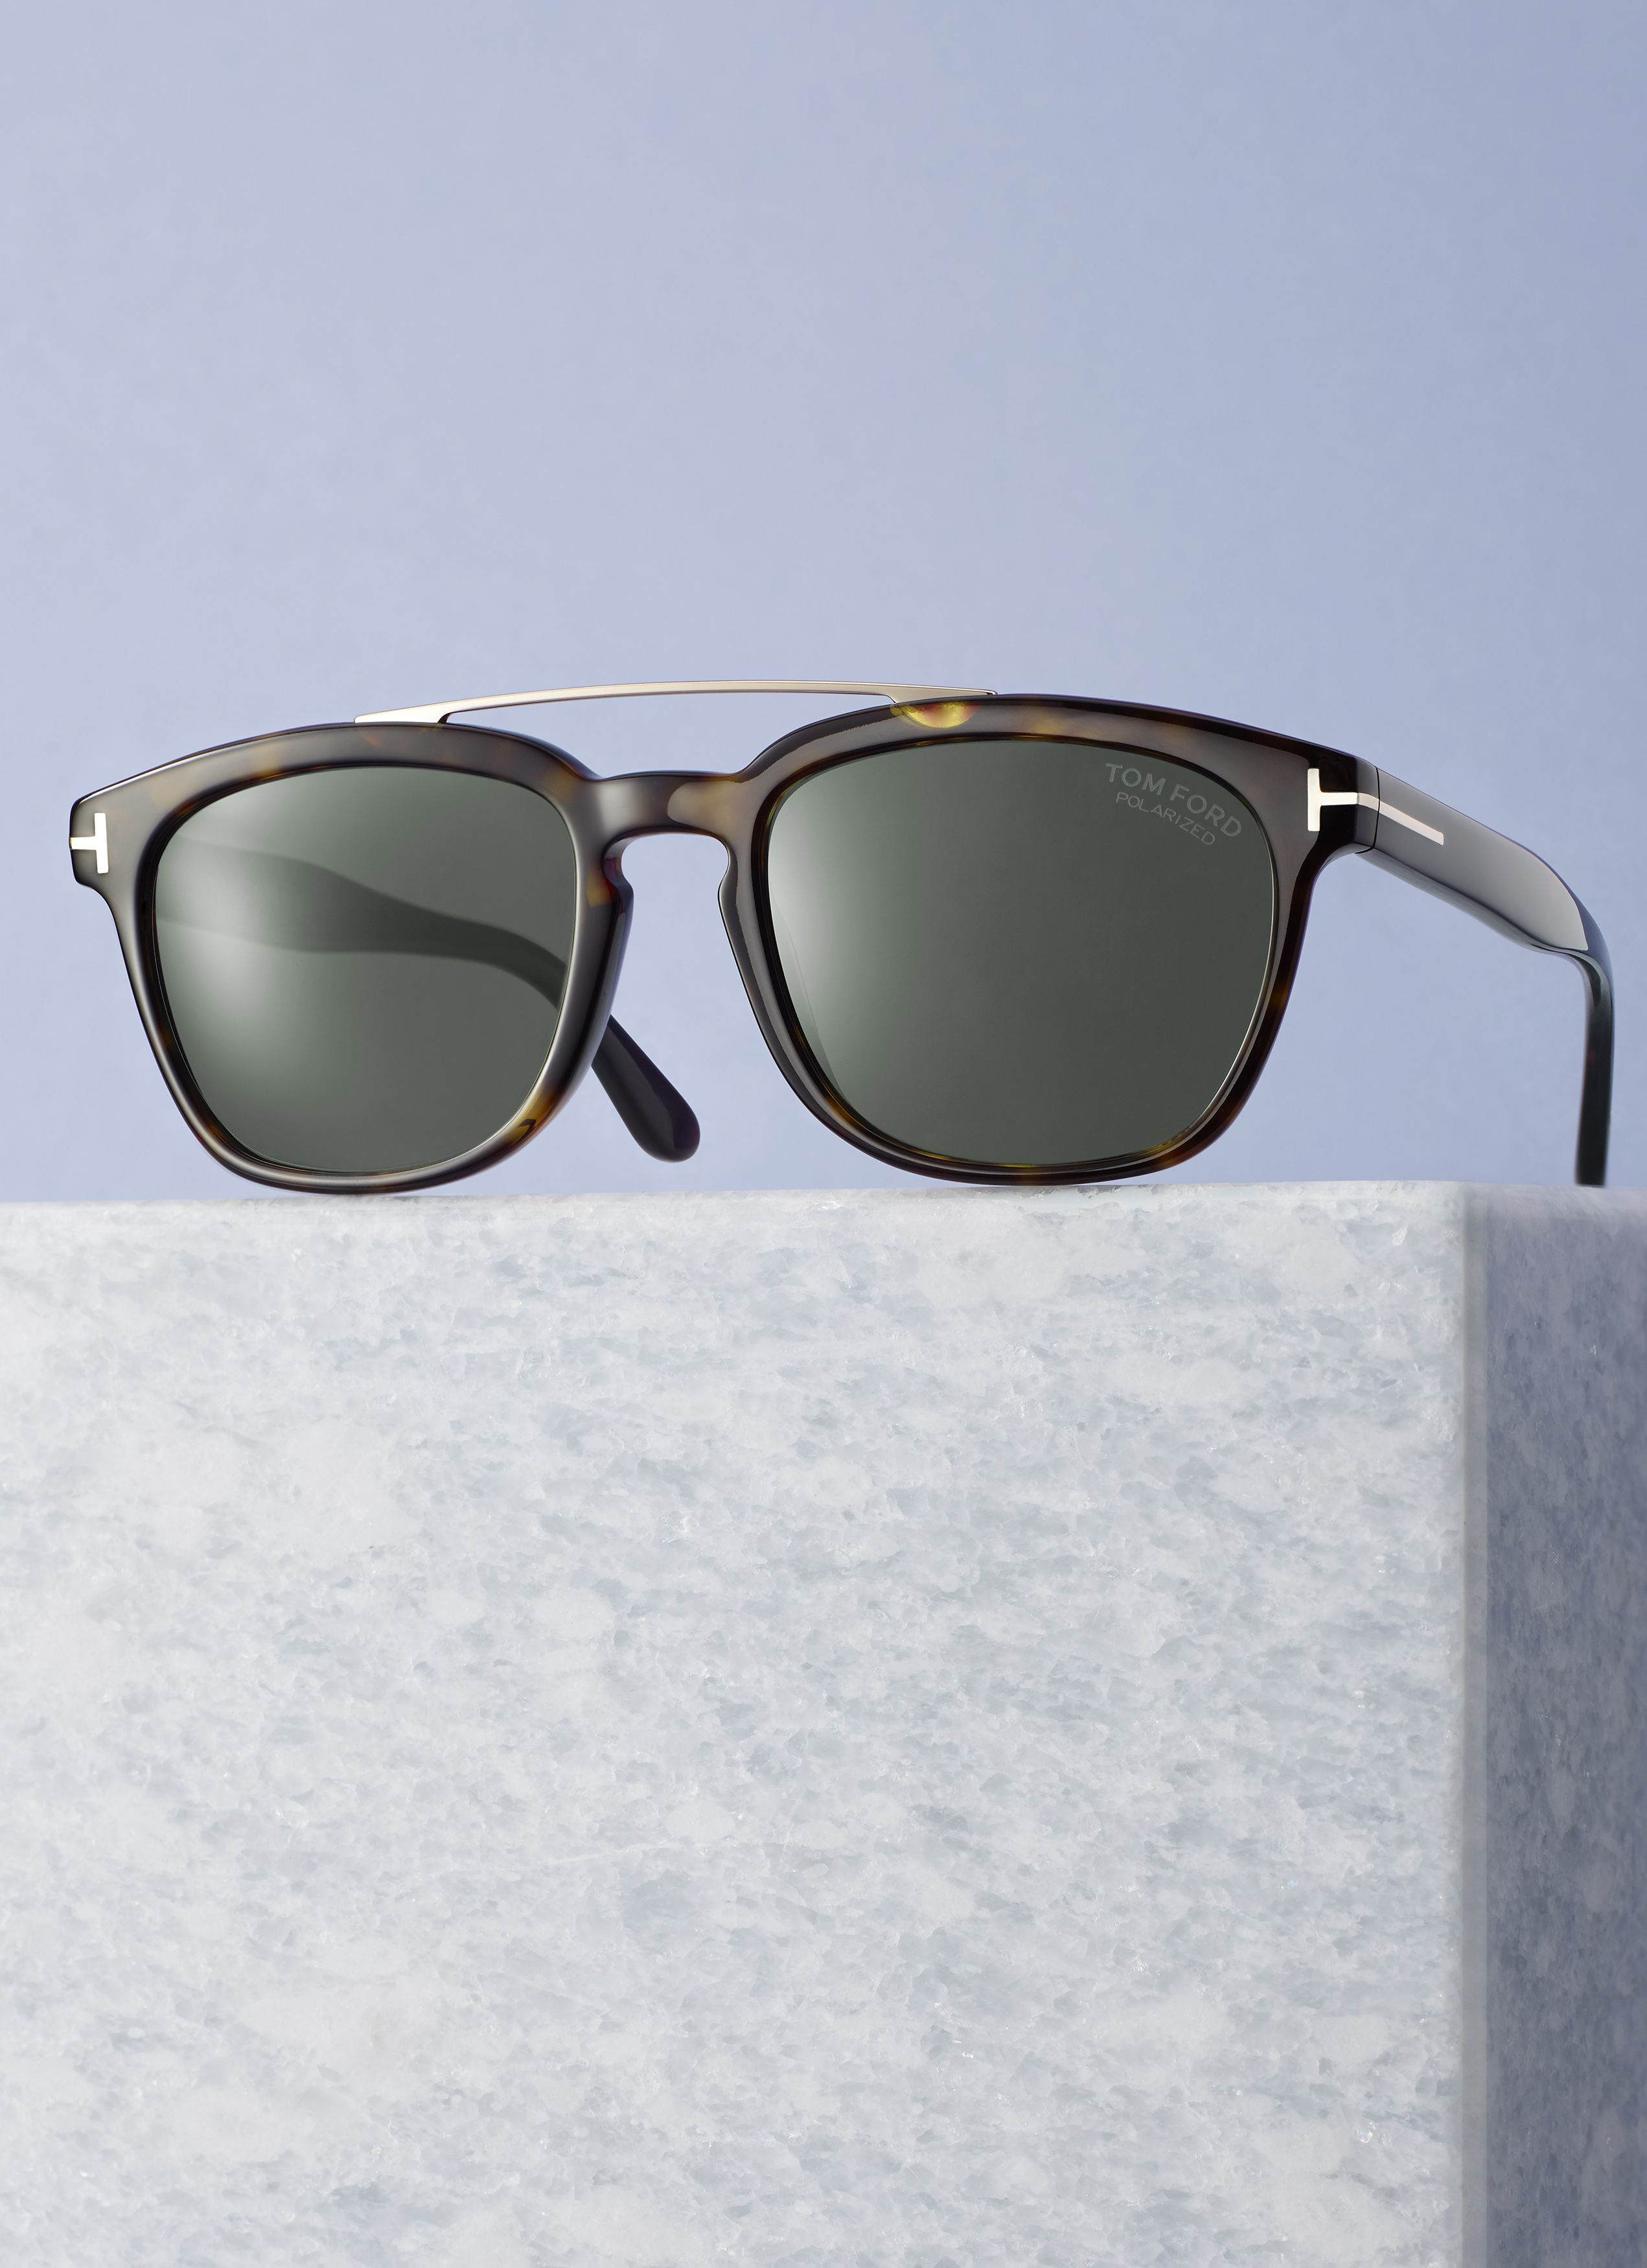 6dc3a9656cd09 TOM FORD Accetate Holt sunglasses in Havana with shiny rose gold metal top  bar and green polarized lenses.  520. Made in Italy.